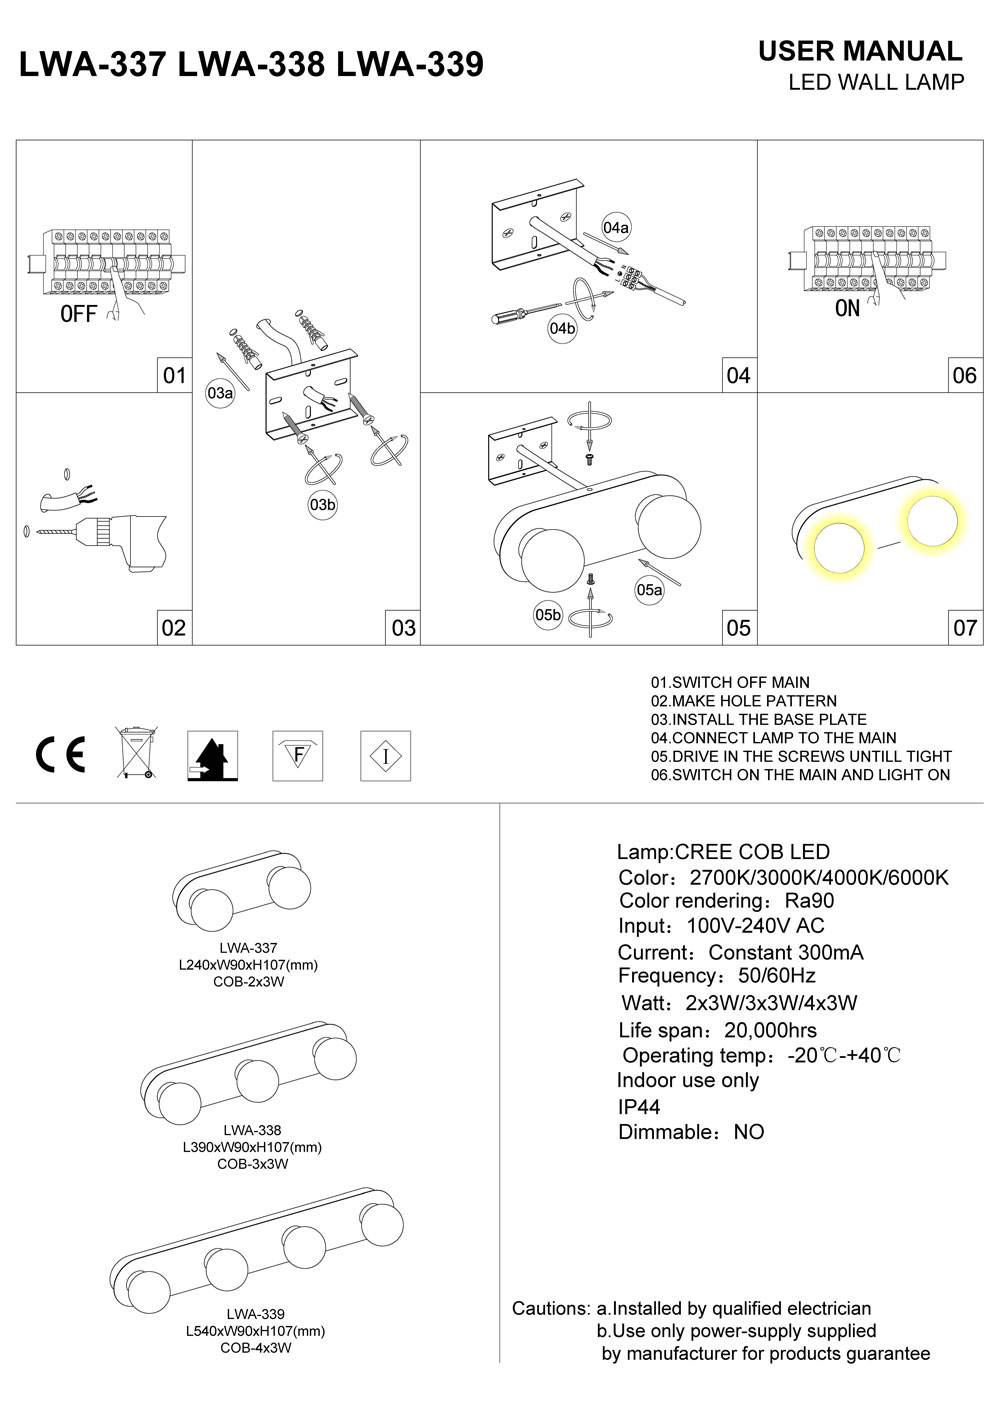 LWA-337-LWA-338-LWA-339 bathroom wall light installation guide